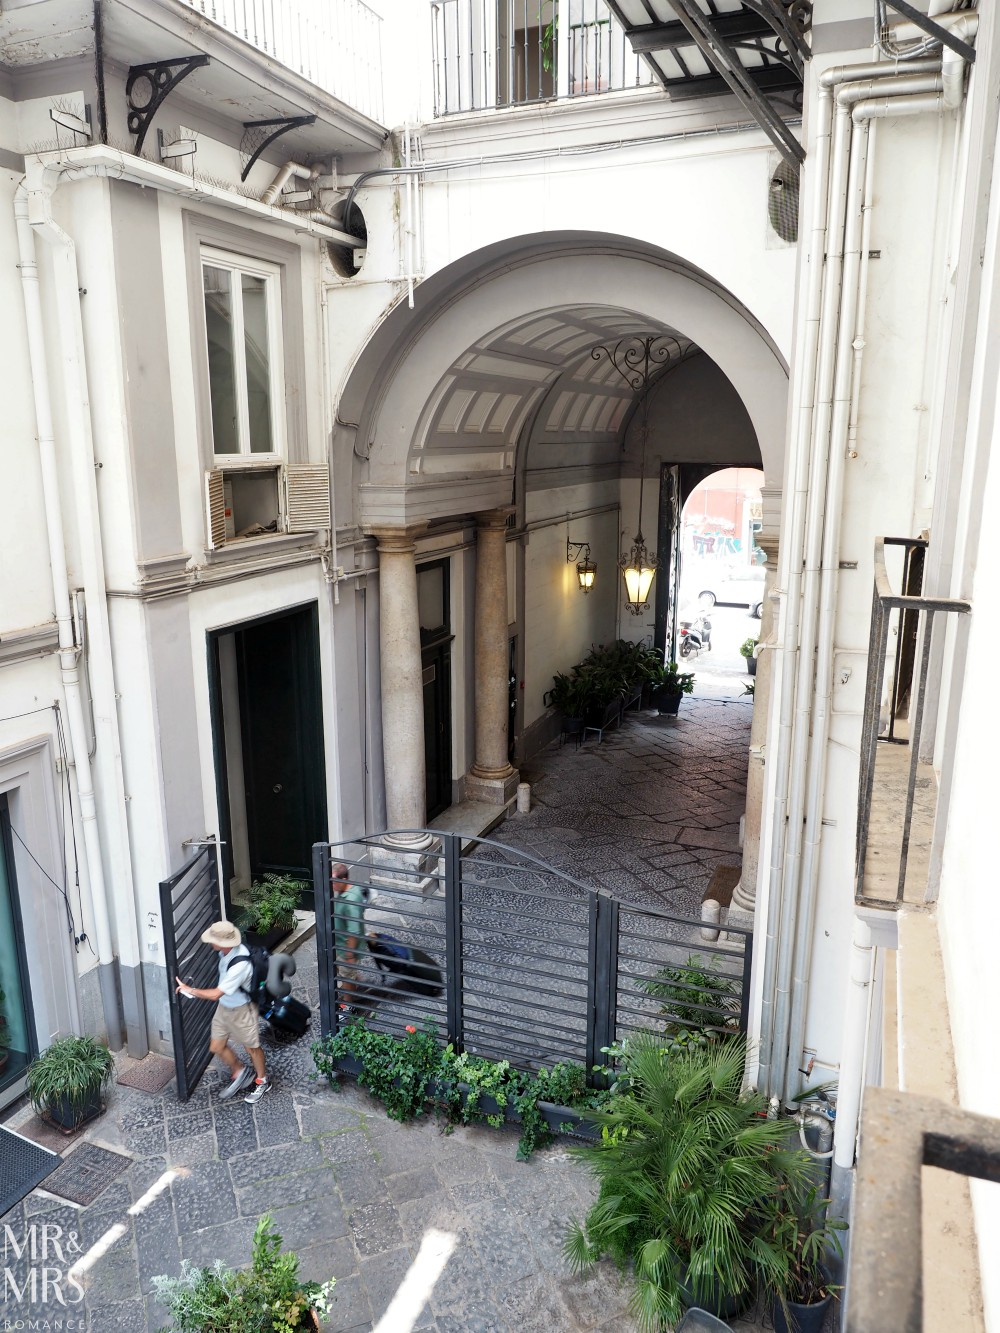 Hotel Piazza Bellini - archway and entrance